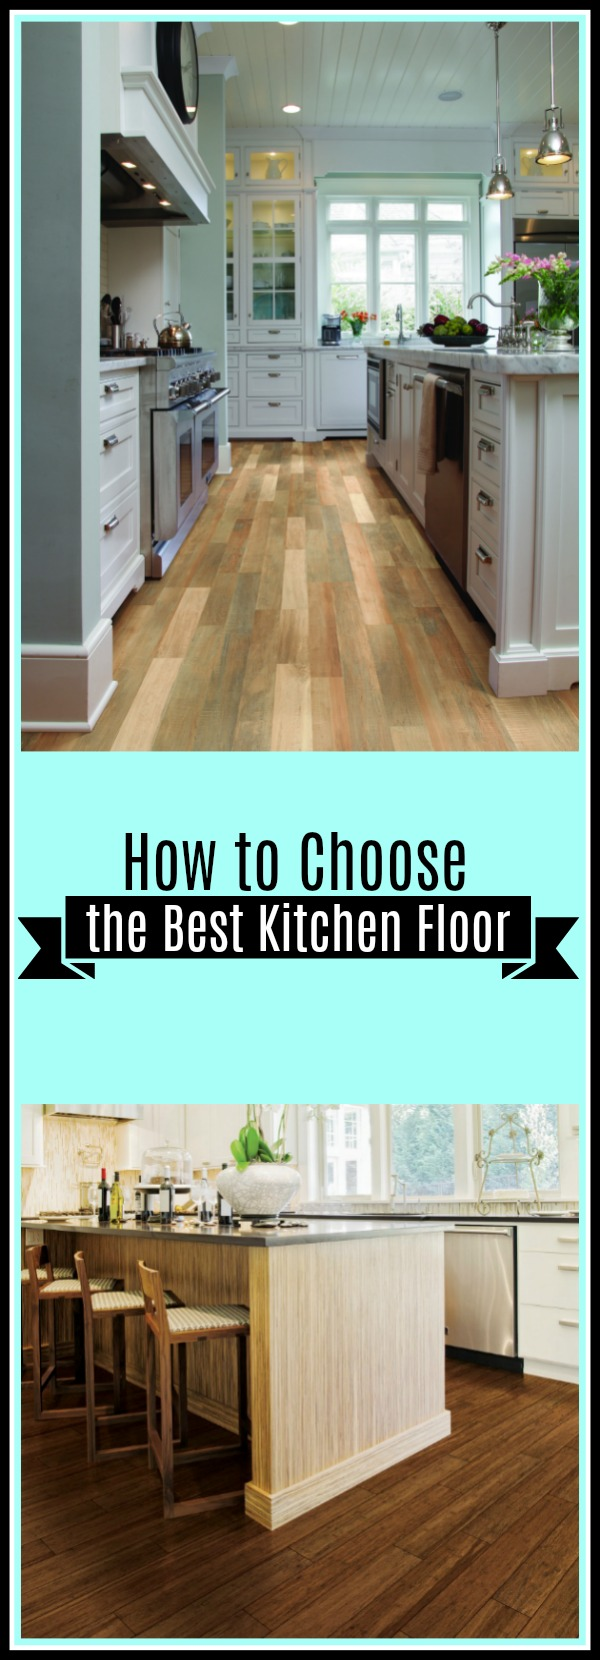 How to choose the best kitchen floor flooringinc blog for How to pick flooring